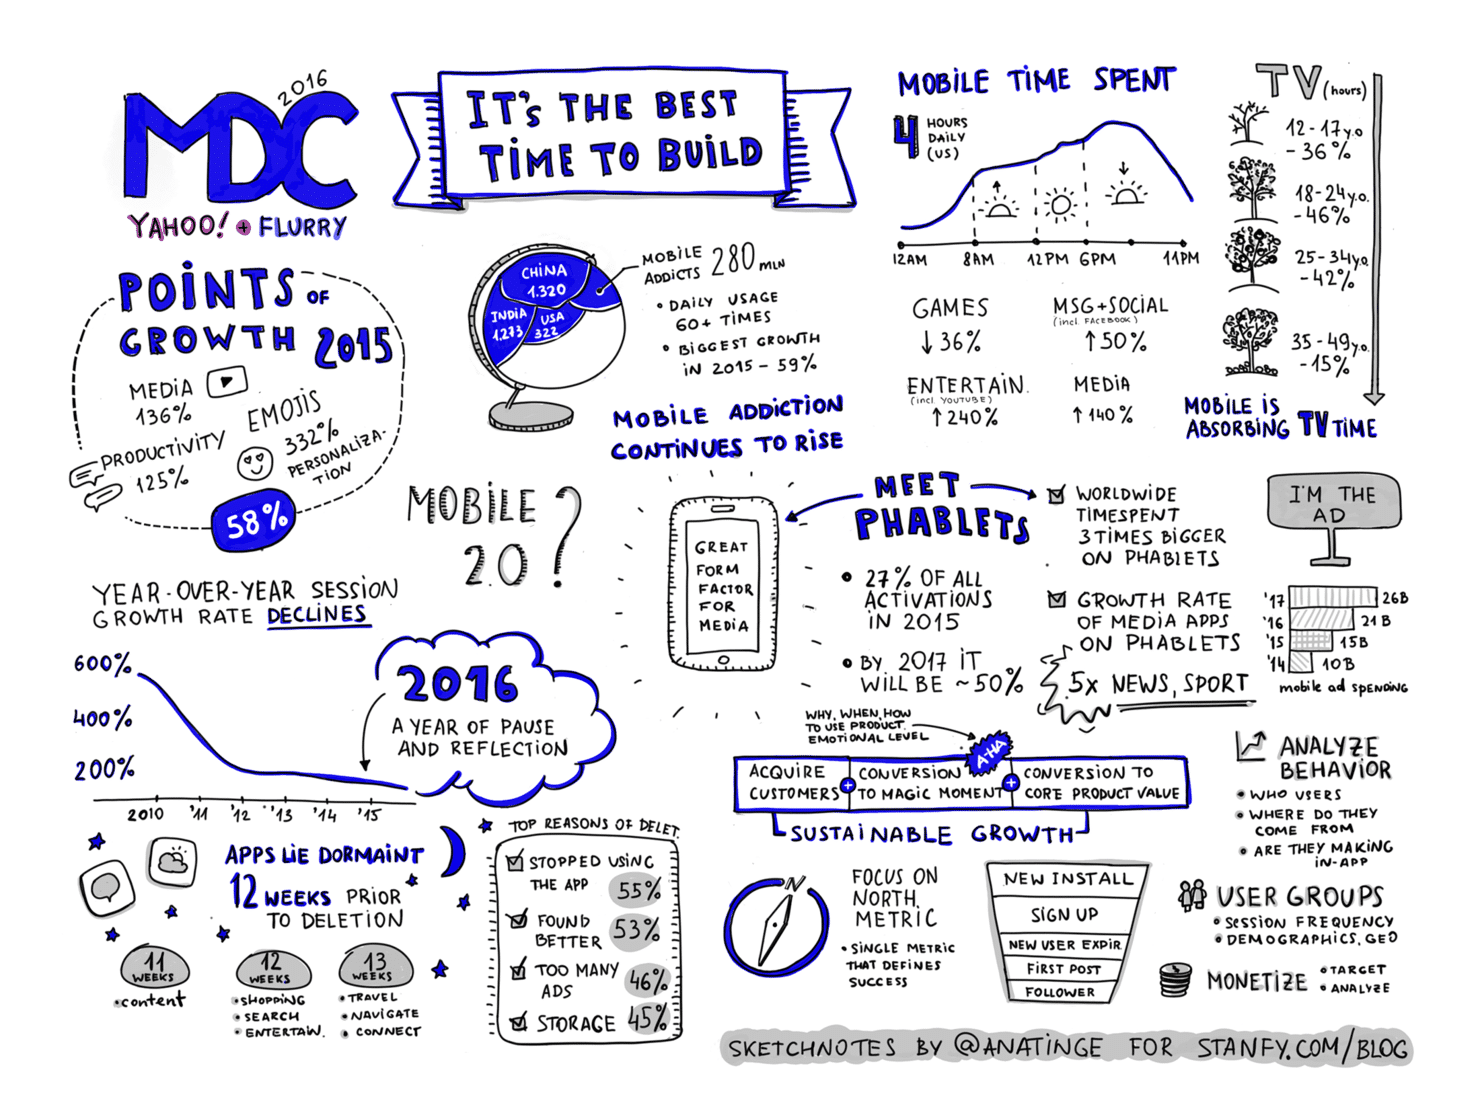 Flurry MDC2016 Infographic